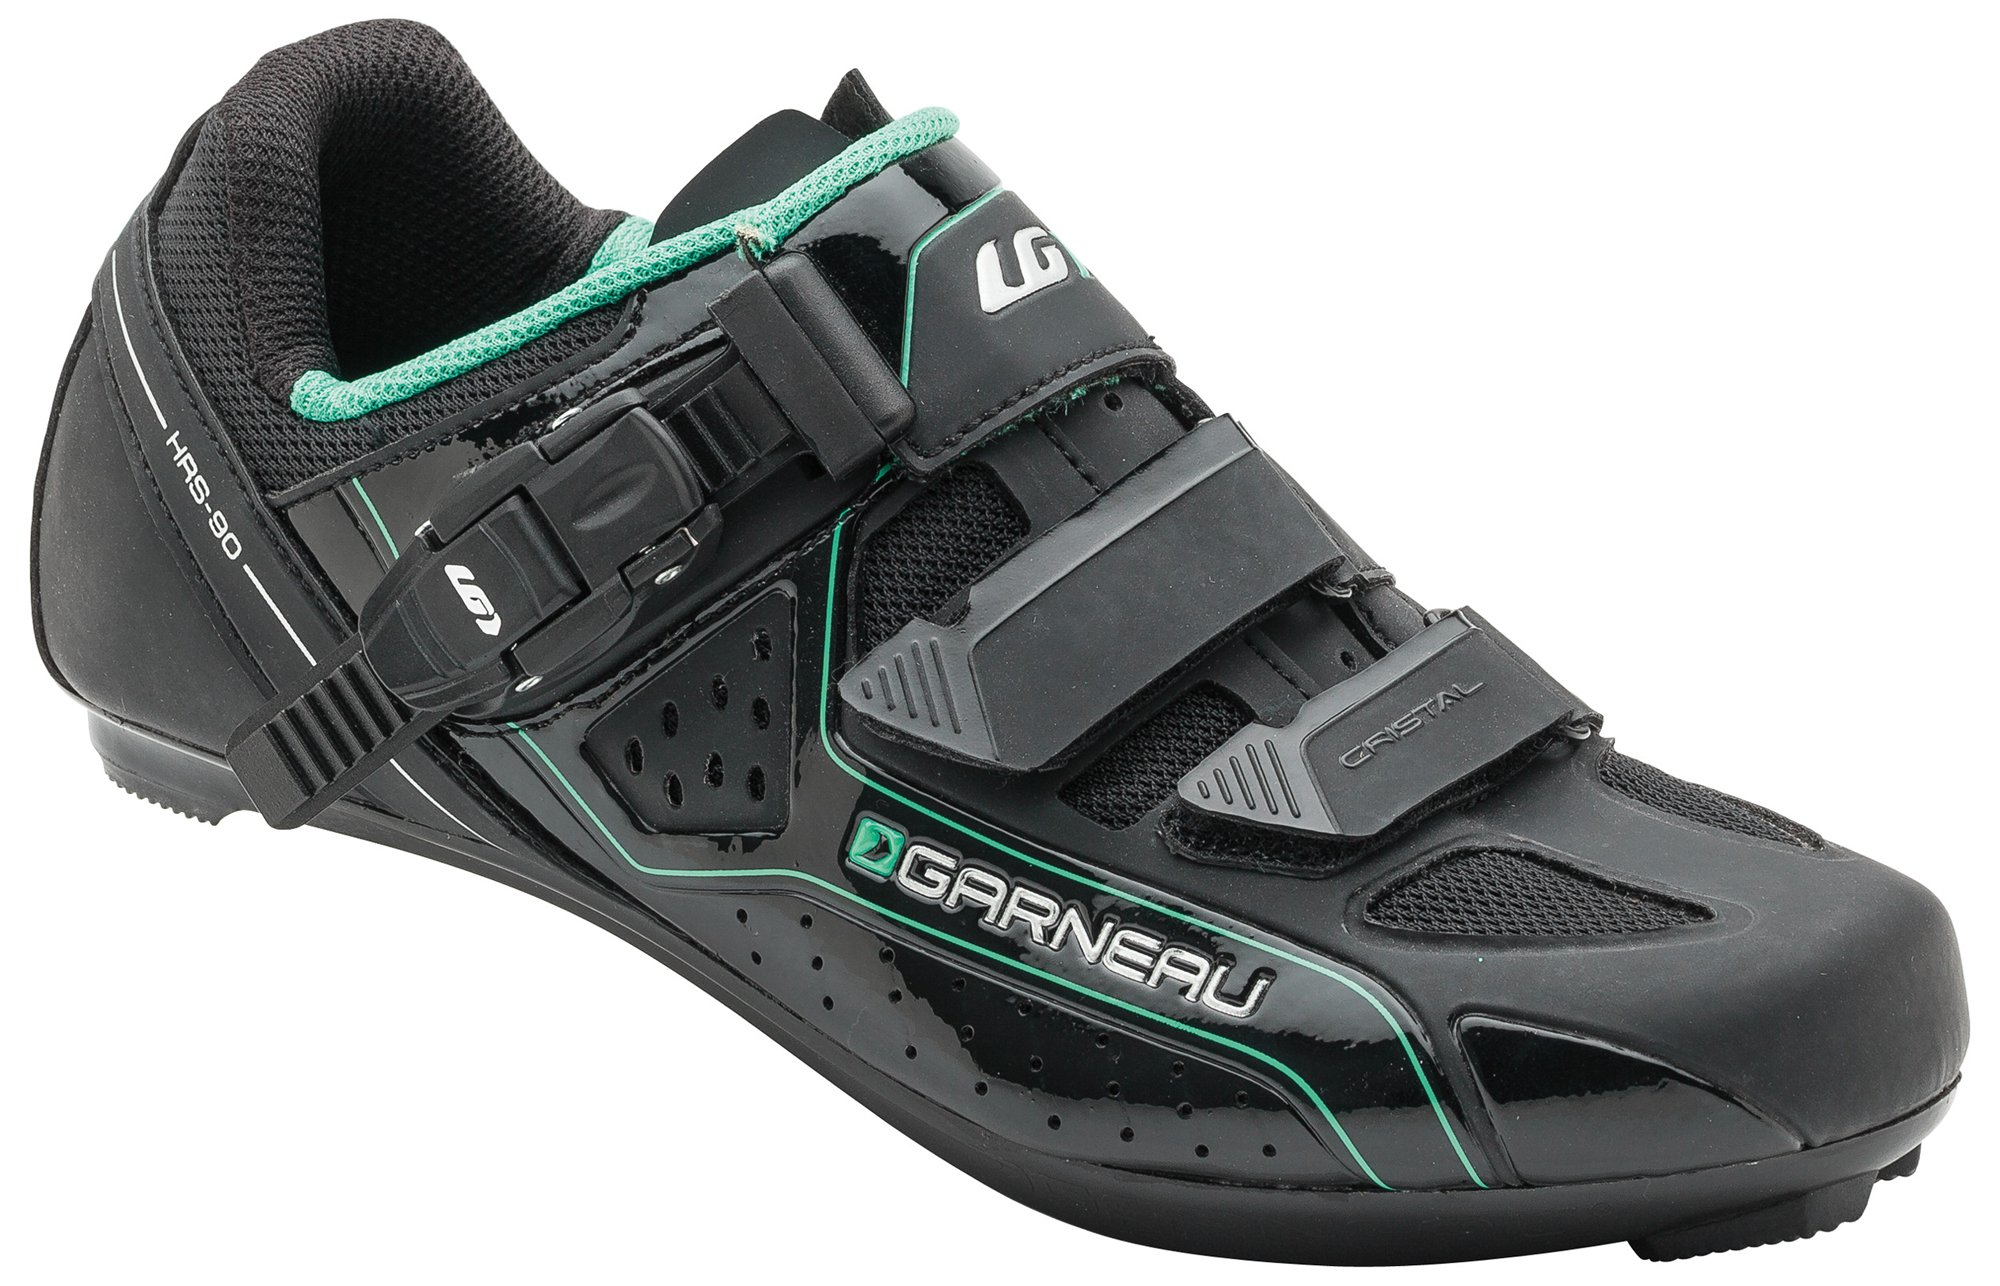 Louis Garneau - Women's Cristal Bike Shoes, Black, US (9), EU (40)